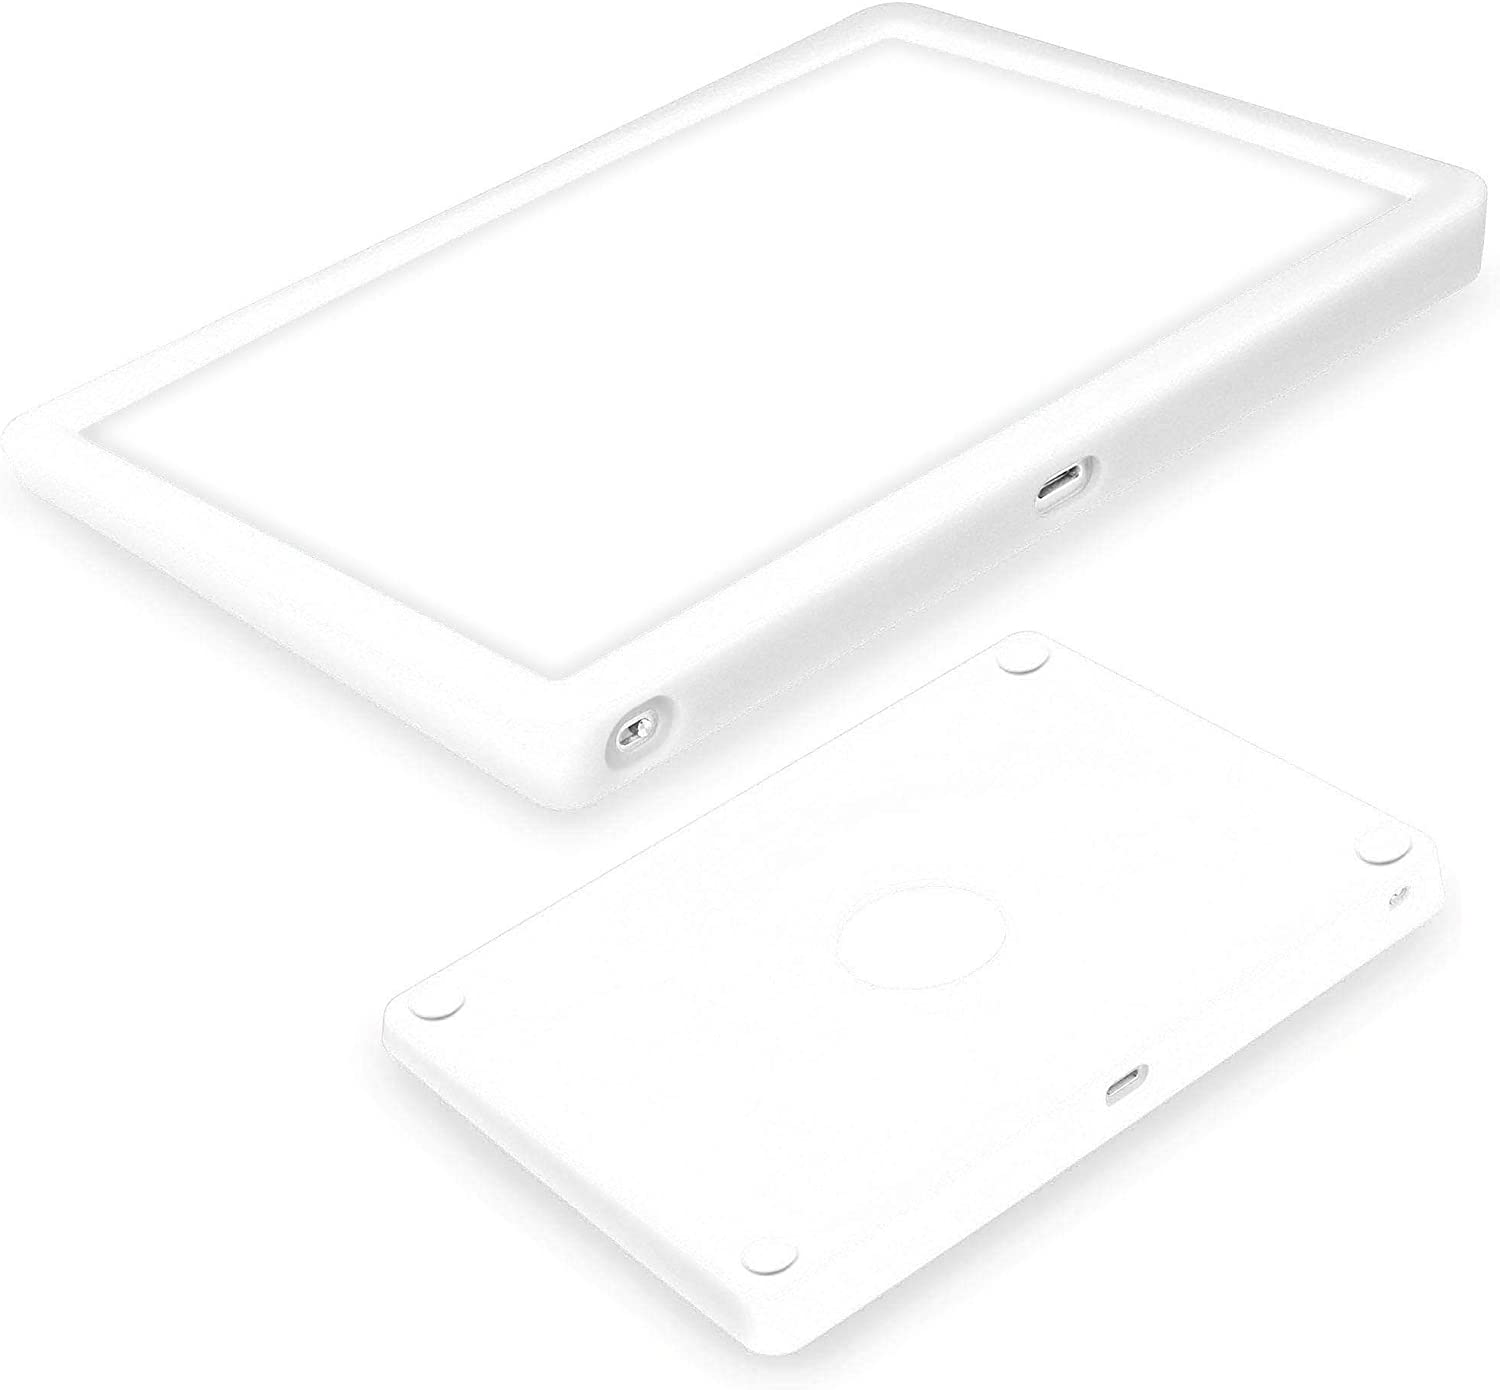 Silicone case for Magic Trackpad 2 Silicon case for Apple Wireless Touchpad Apple Trackpad Protective Cover,Anti-dust and Anti-Scratch Washable Wear-Resistant Silicone Skin (White)